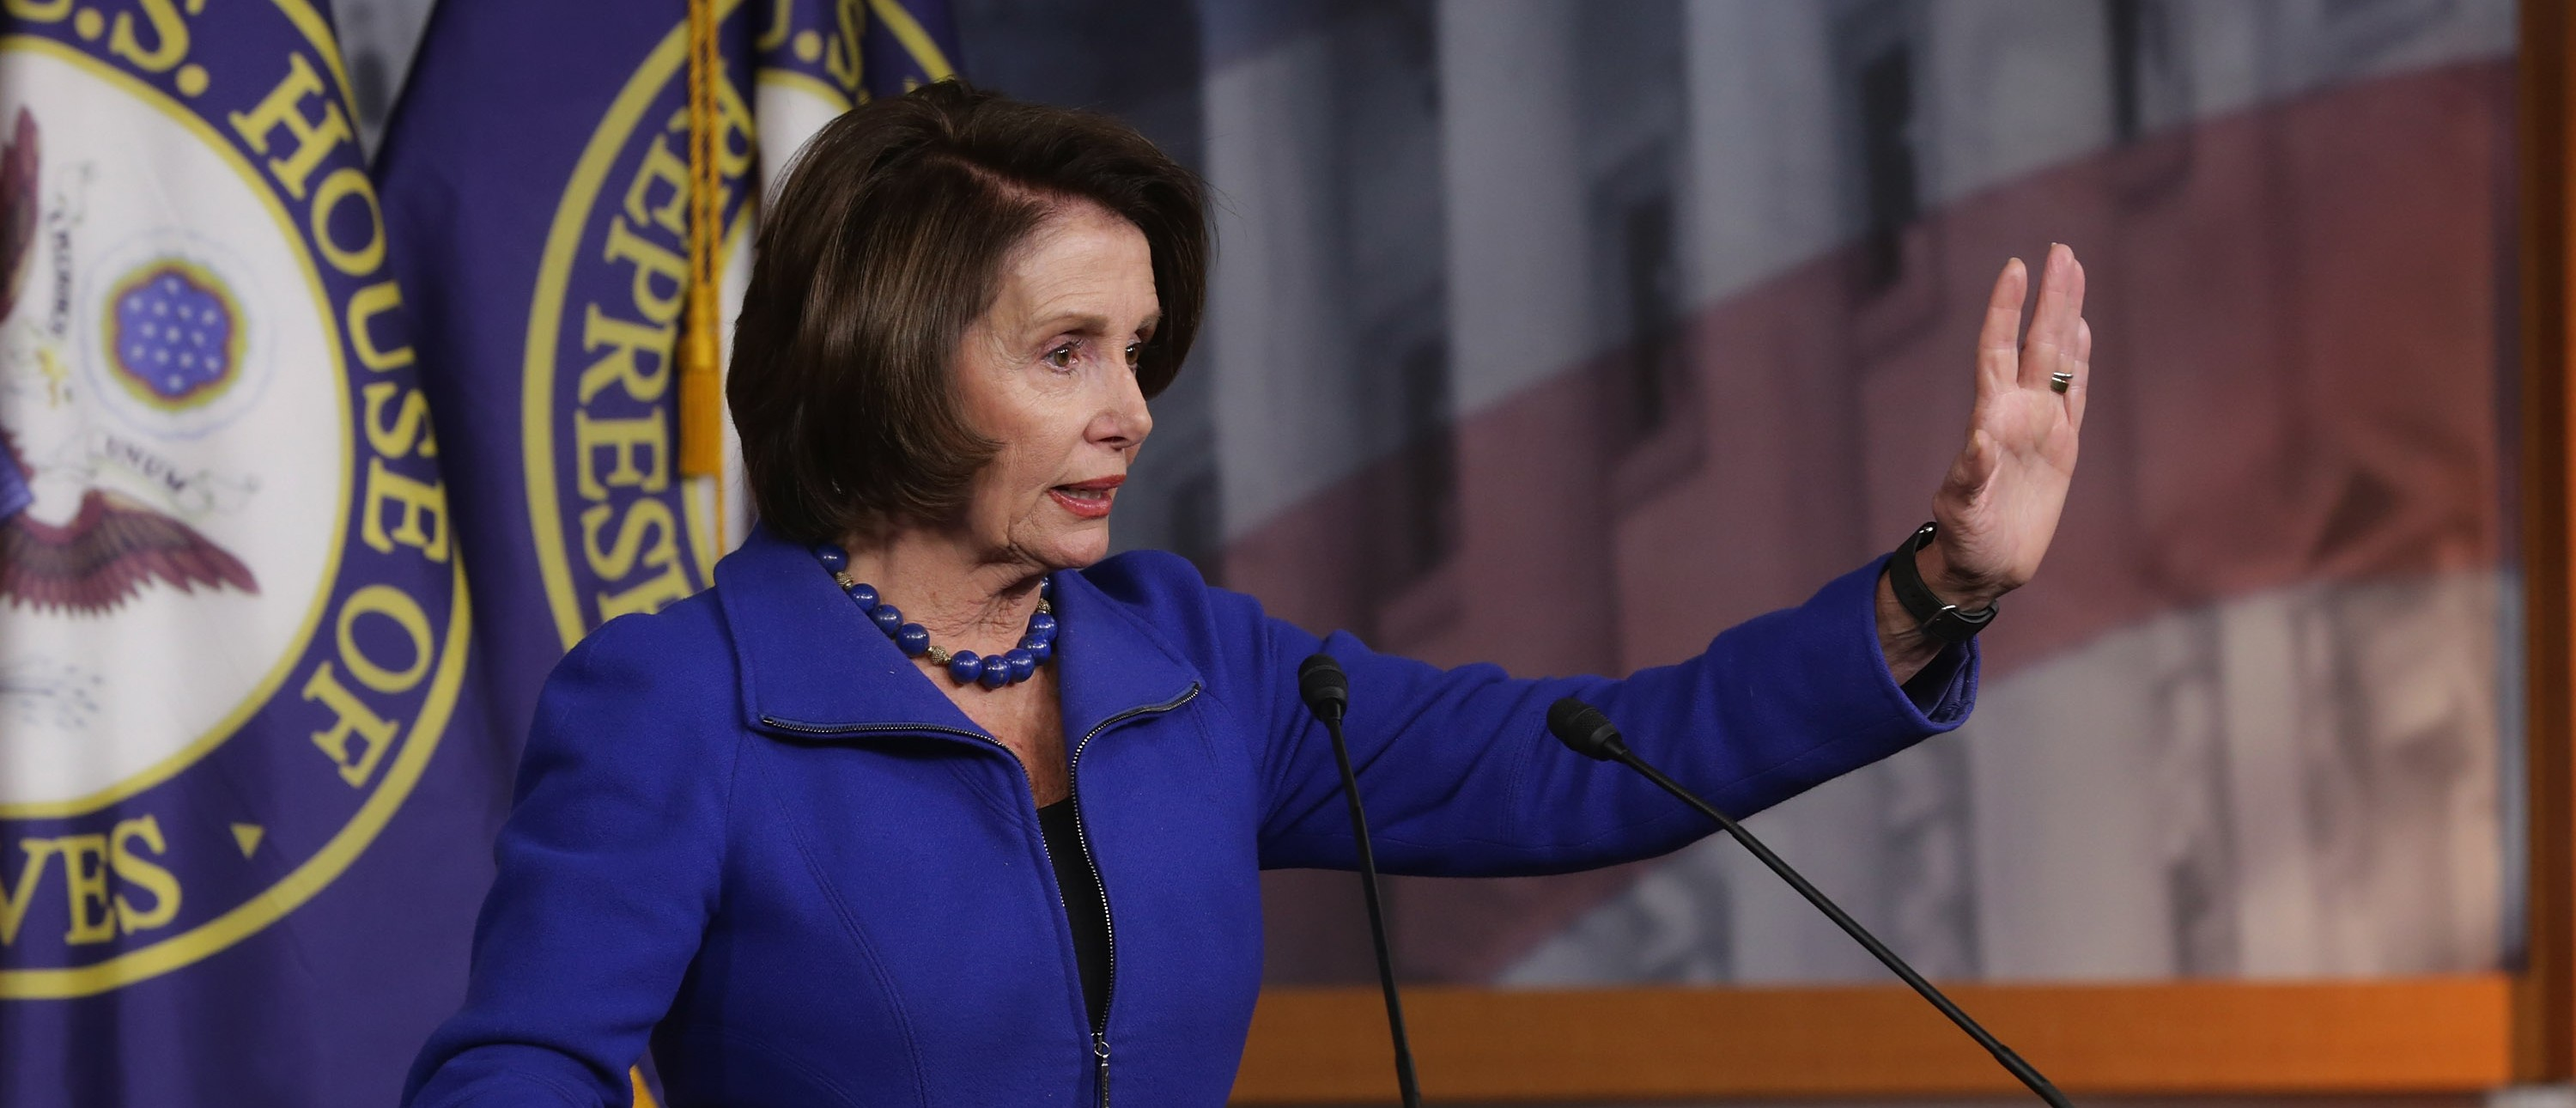 House Minority Leader Nancy Pelosi is a sure thing to vote for gun control. (Photo by Chip Somodevilla/Getty Images)